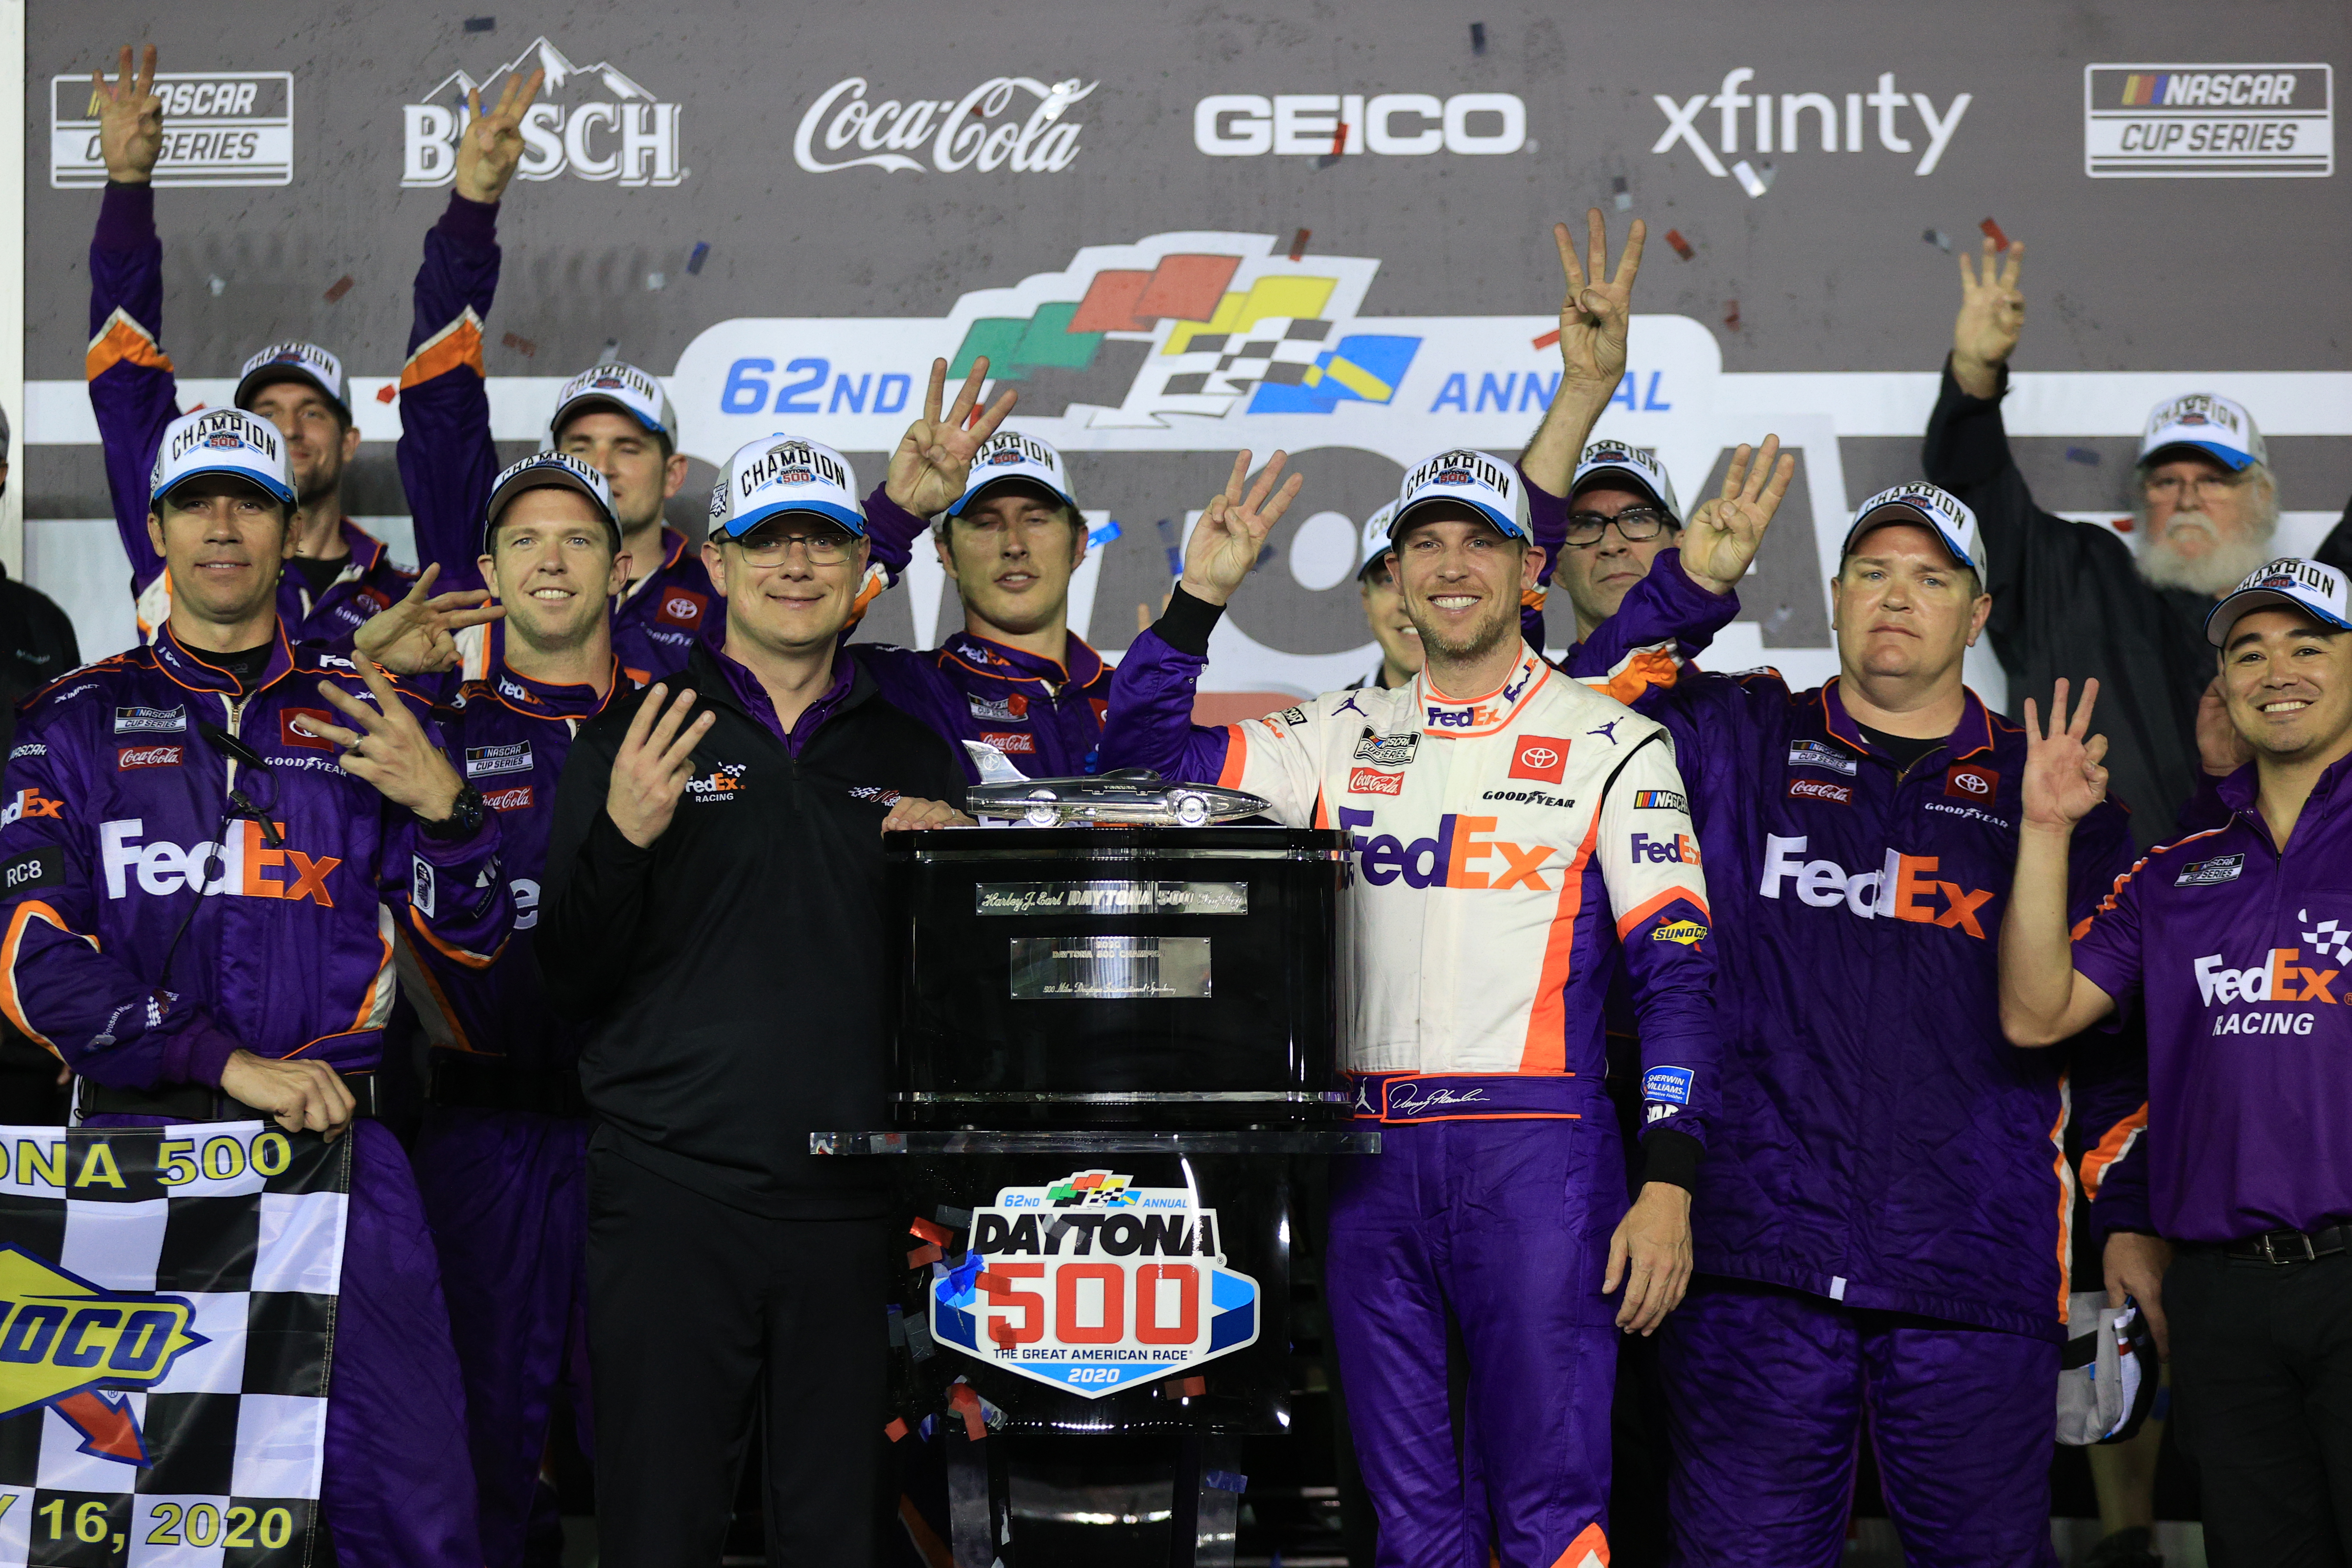 FedEx driver Denny Hamlin celebrates in Victory Lane after winning the NASCAR Cup Series 62nd annual Daytona 500